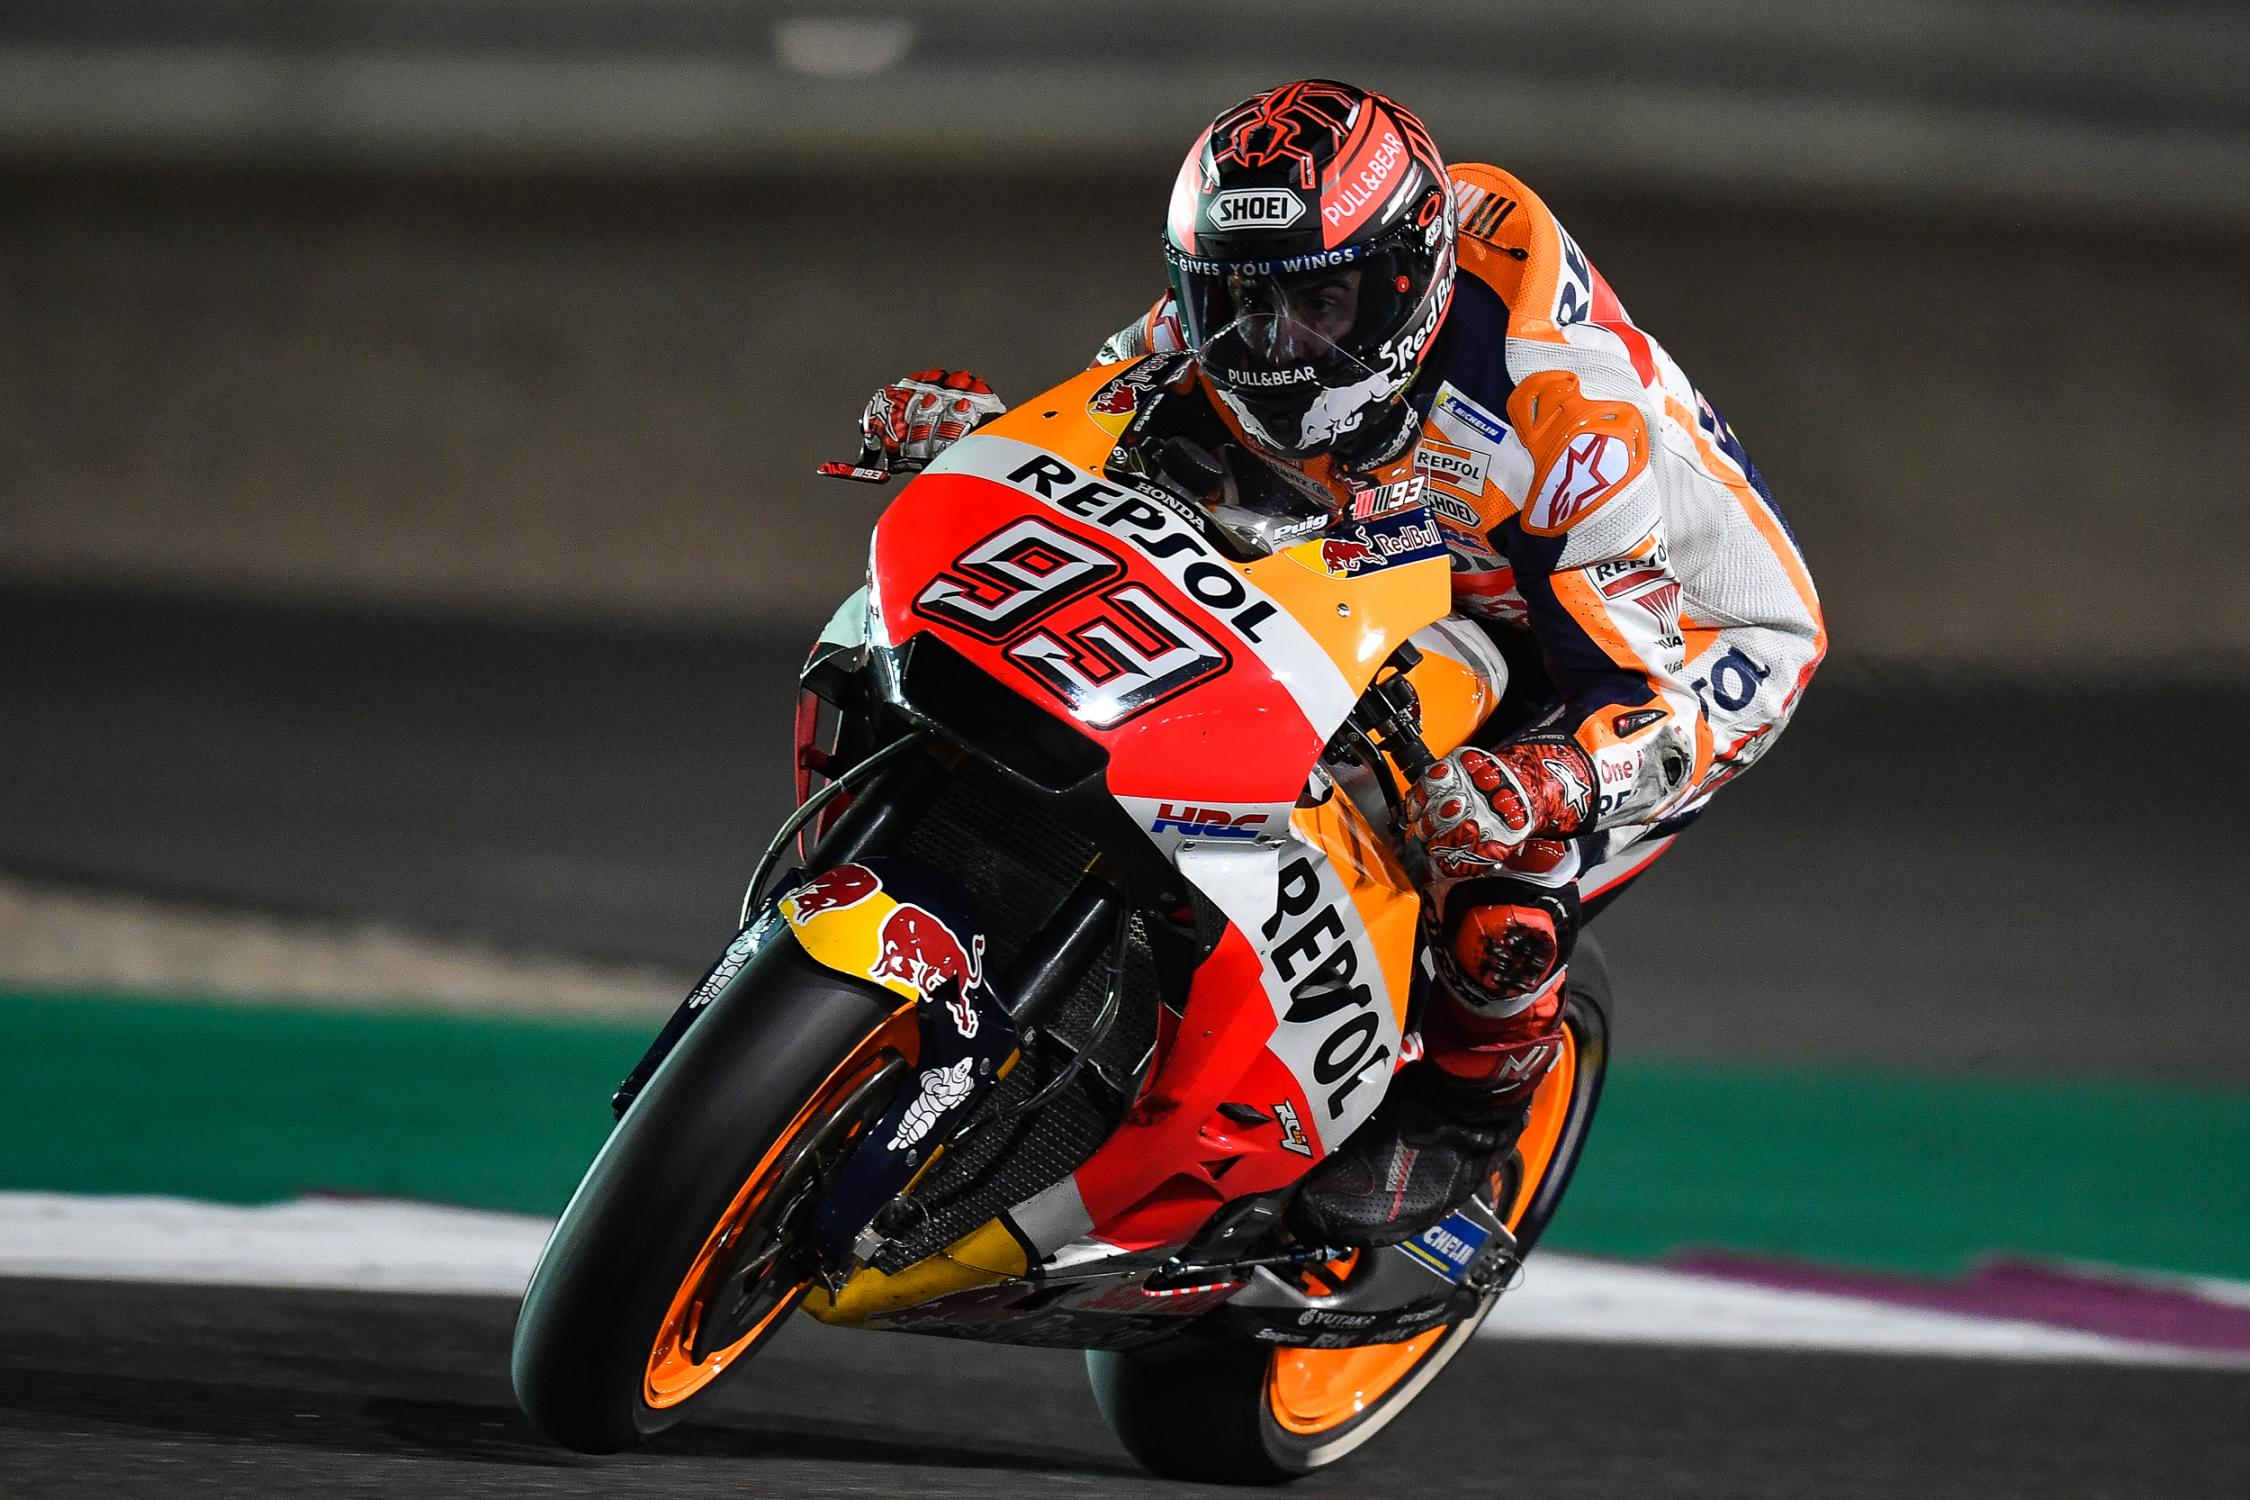 [Test] Losail 2018 93-marc-marquez-esplg5_4894.gallery_full_top_fullscreen